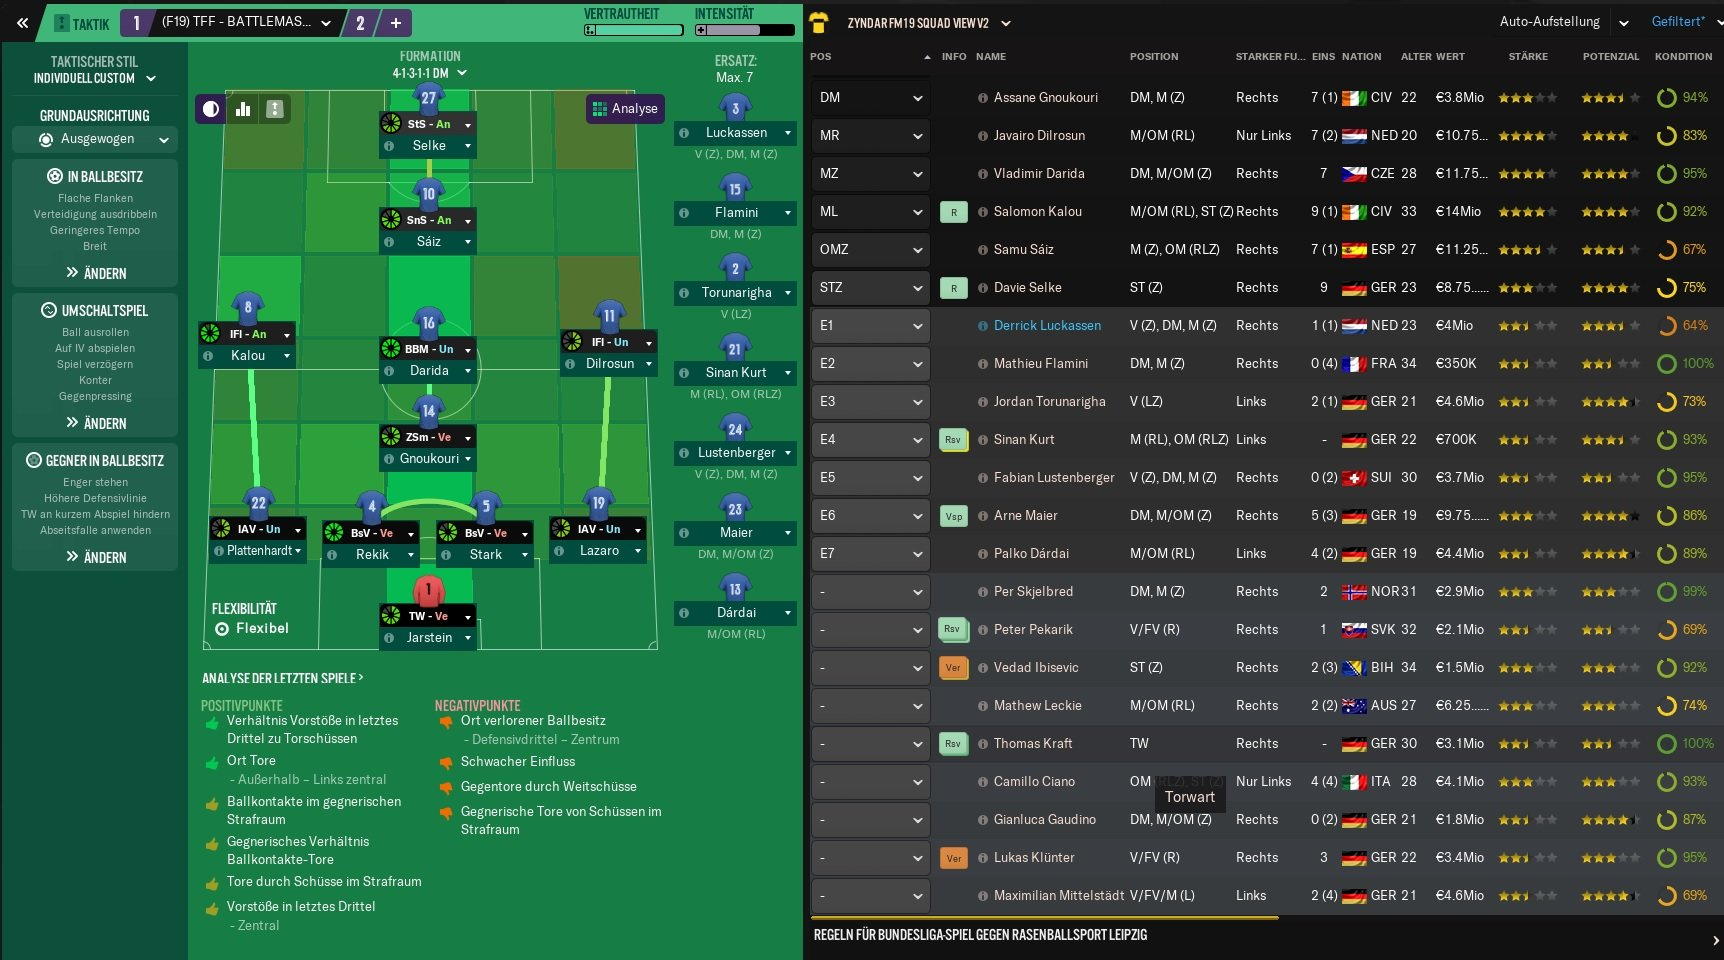 FM19 Tactics by TFF - Page 6 - Tactics Sharing Centre